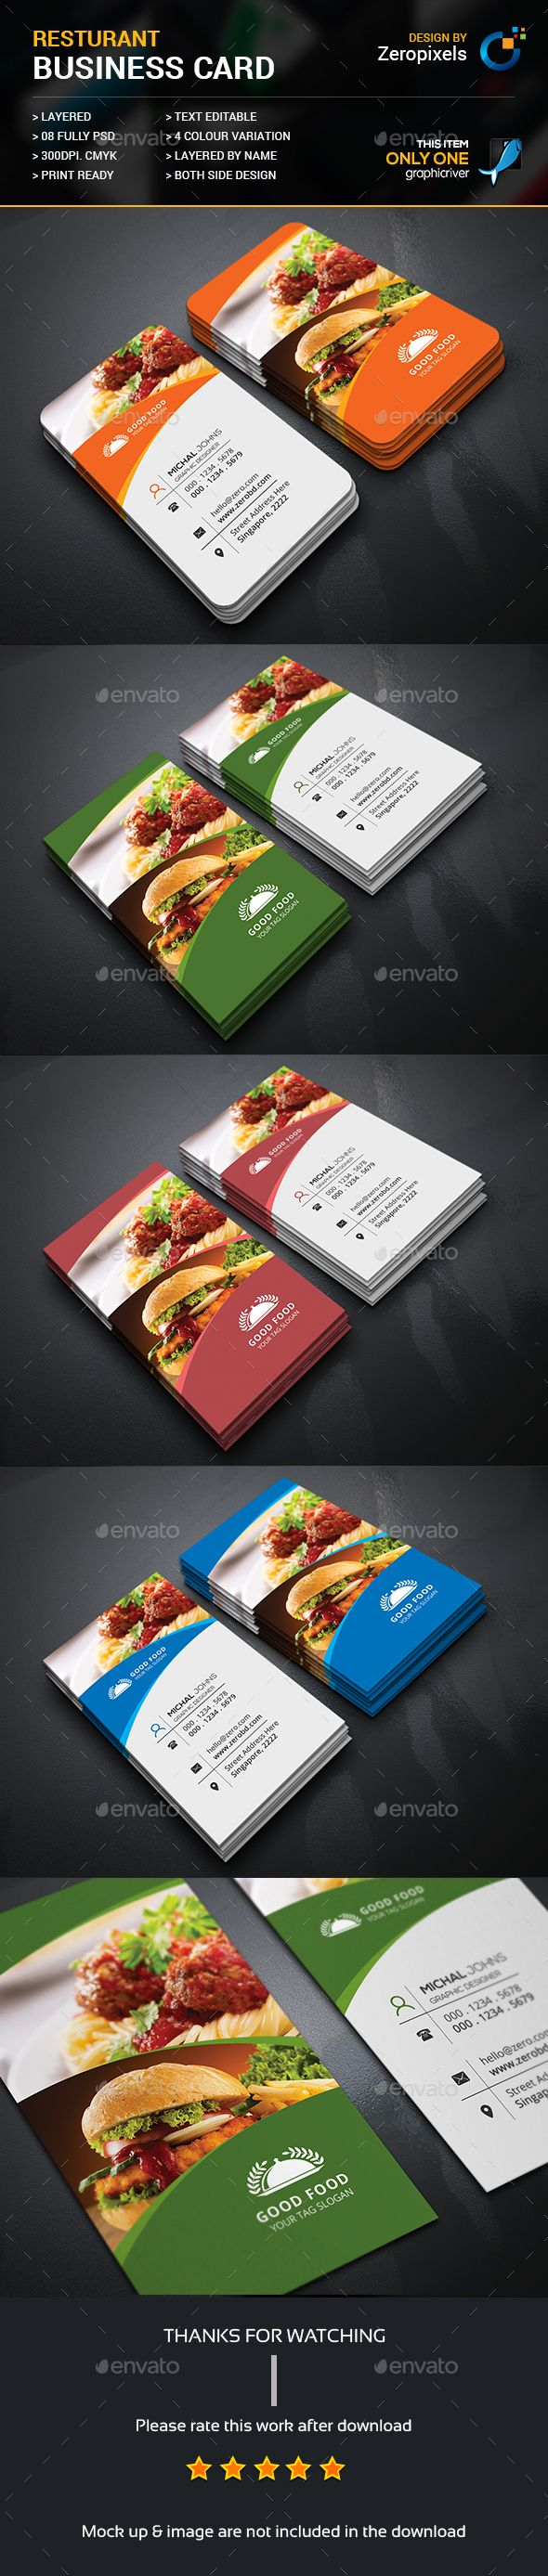 Restaurant Business Card Template PSD Download Here Https - Editable business card templates free